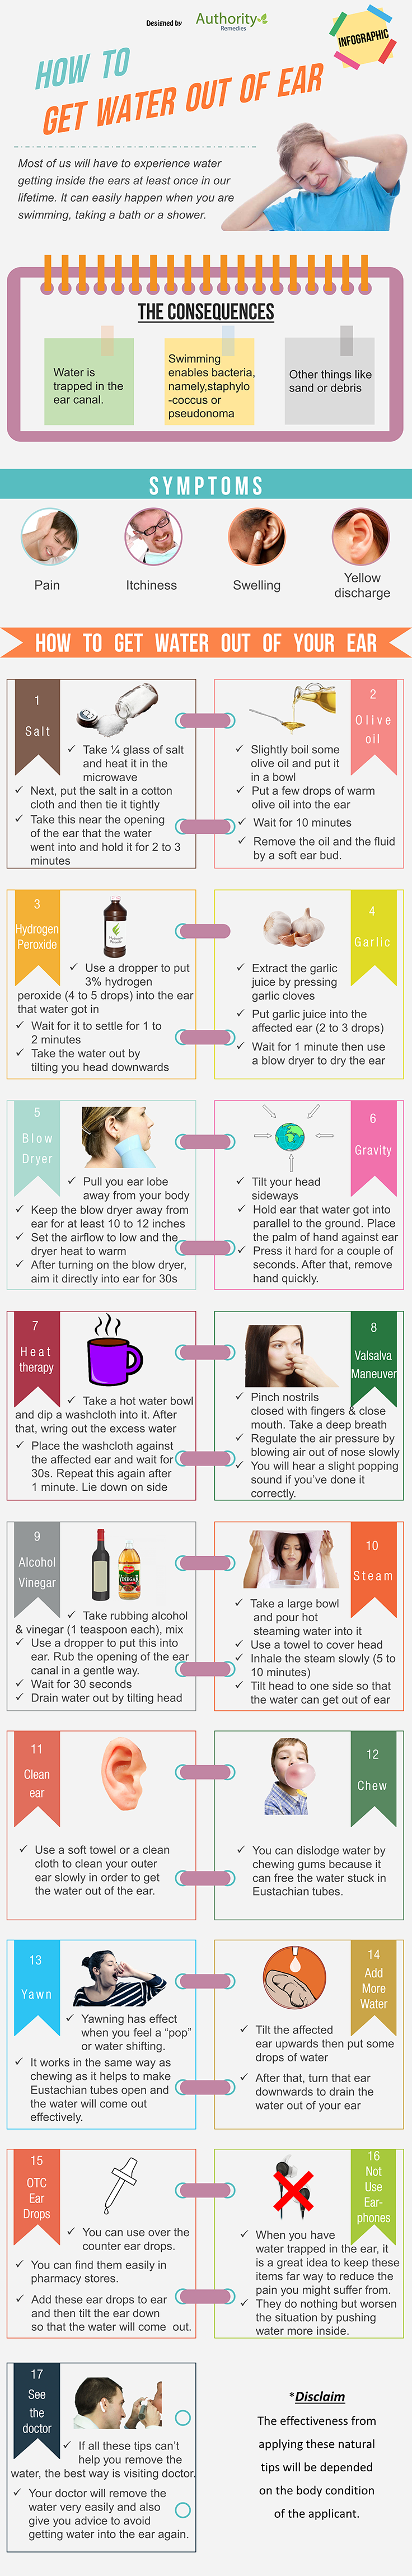 Infographic - How To Get Water Out of Your Ear